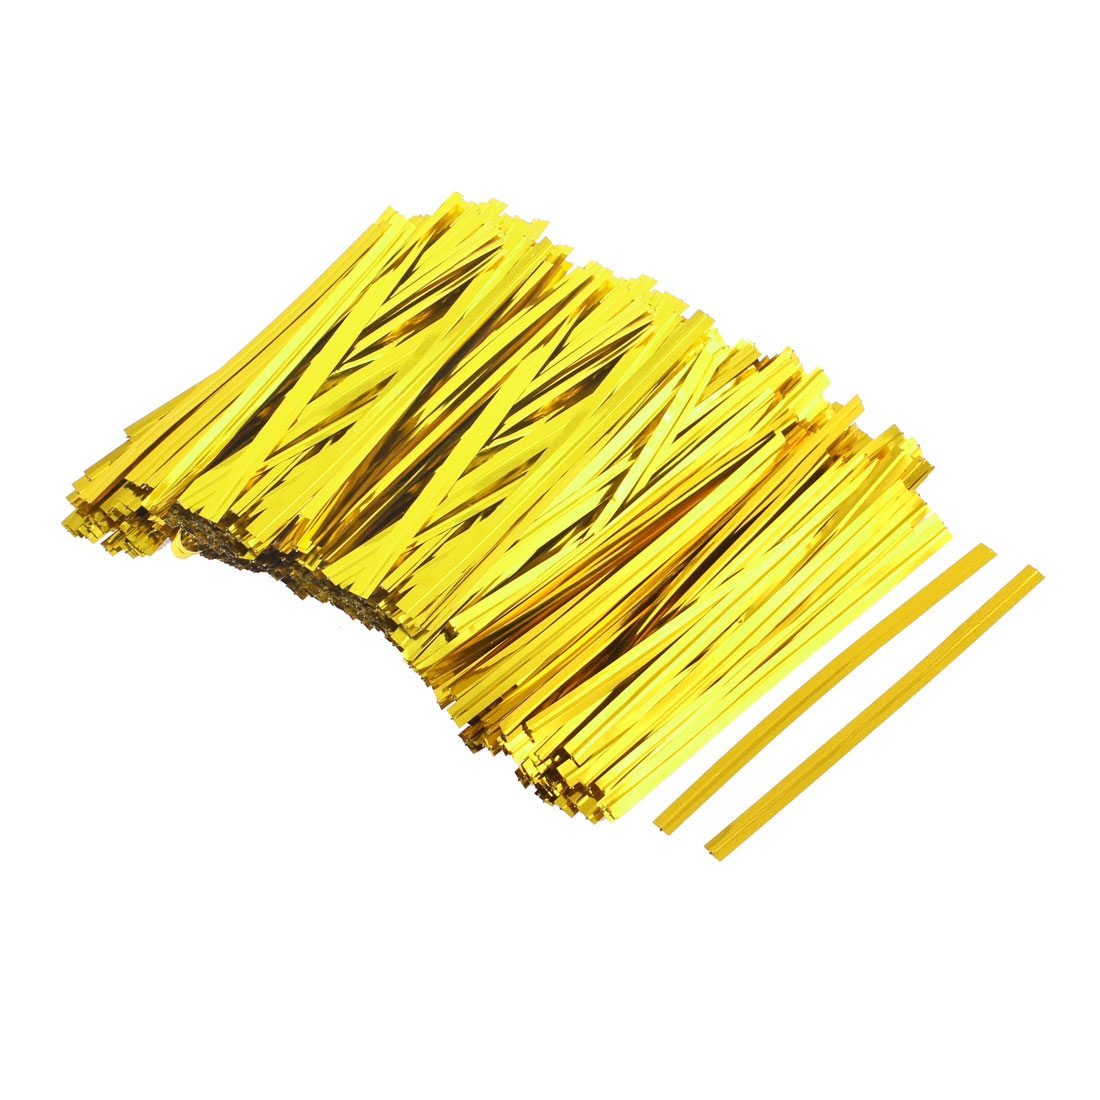 Candy Bread Bags Packaging Twist Tie Gold Tone 800PCS